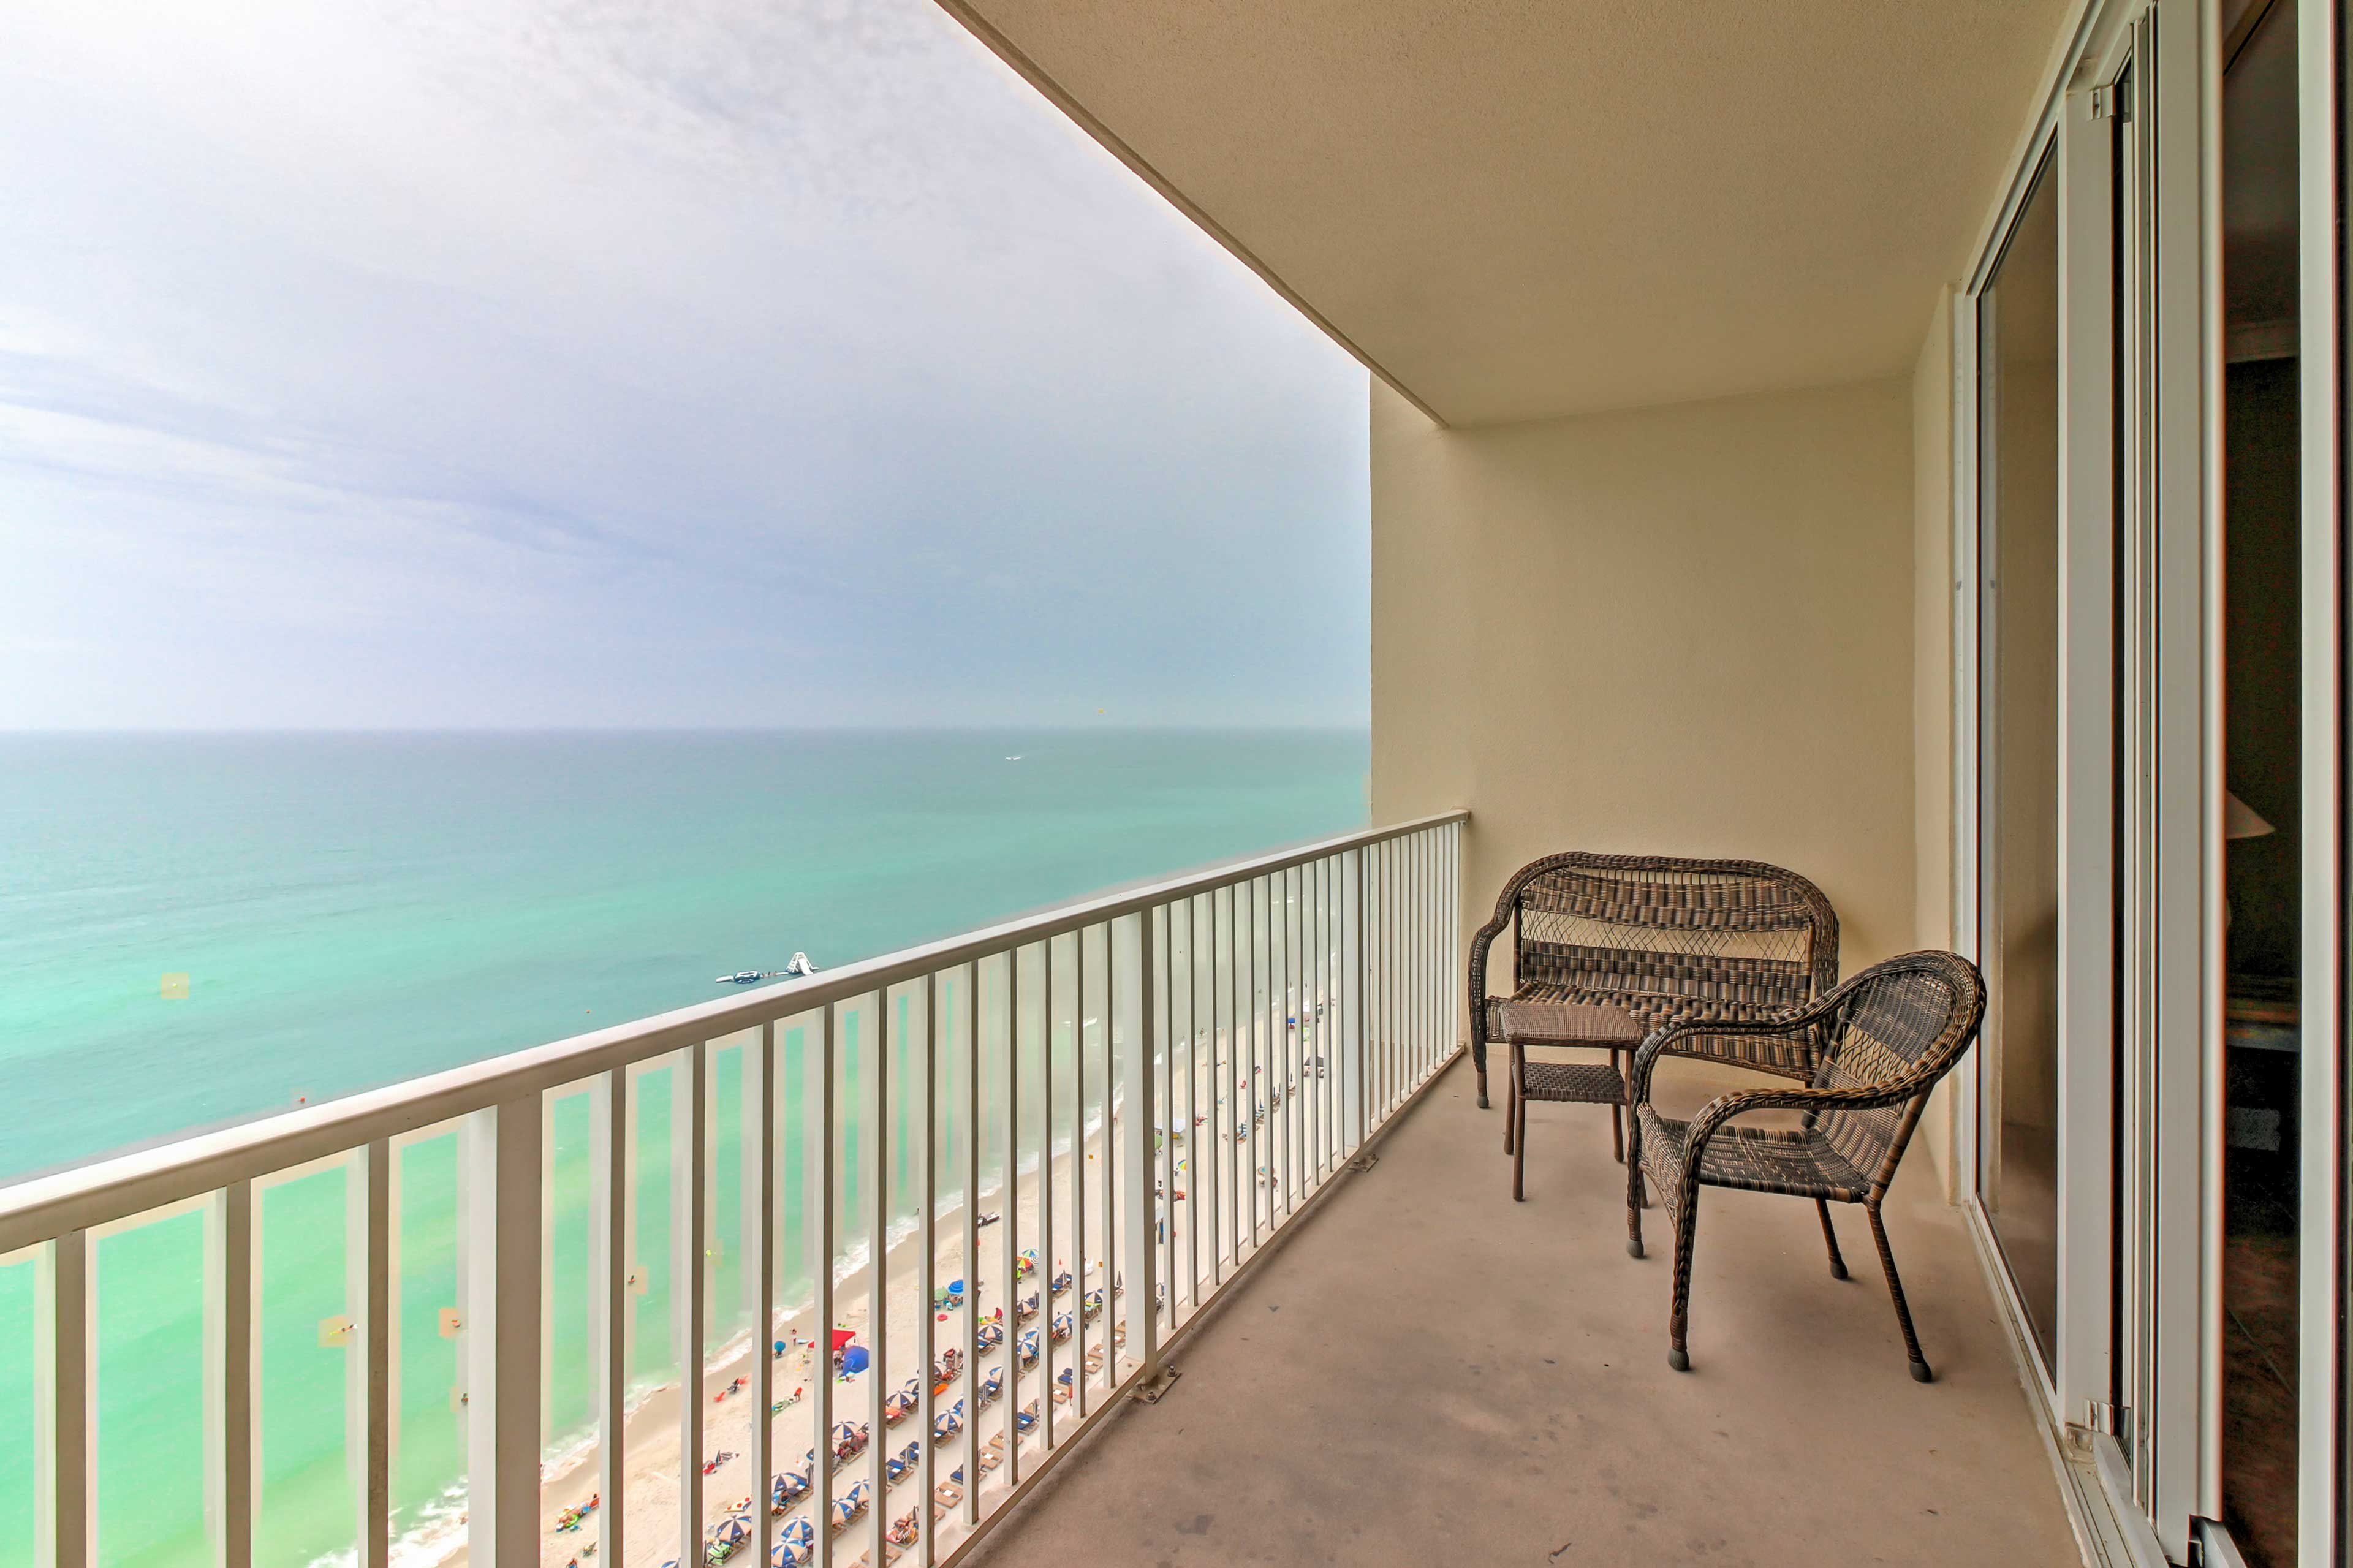 Soak in the ocean views from your private balcony.